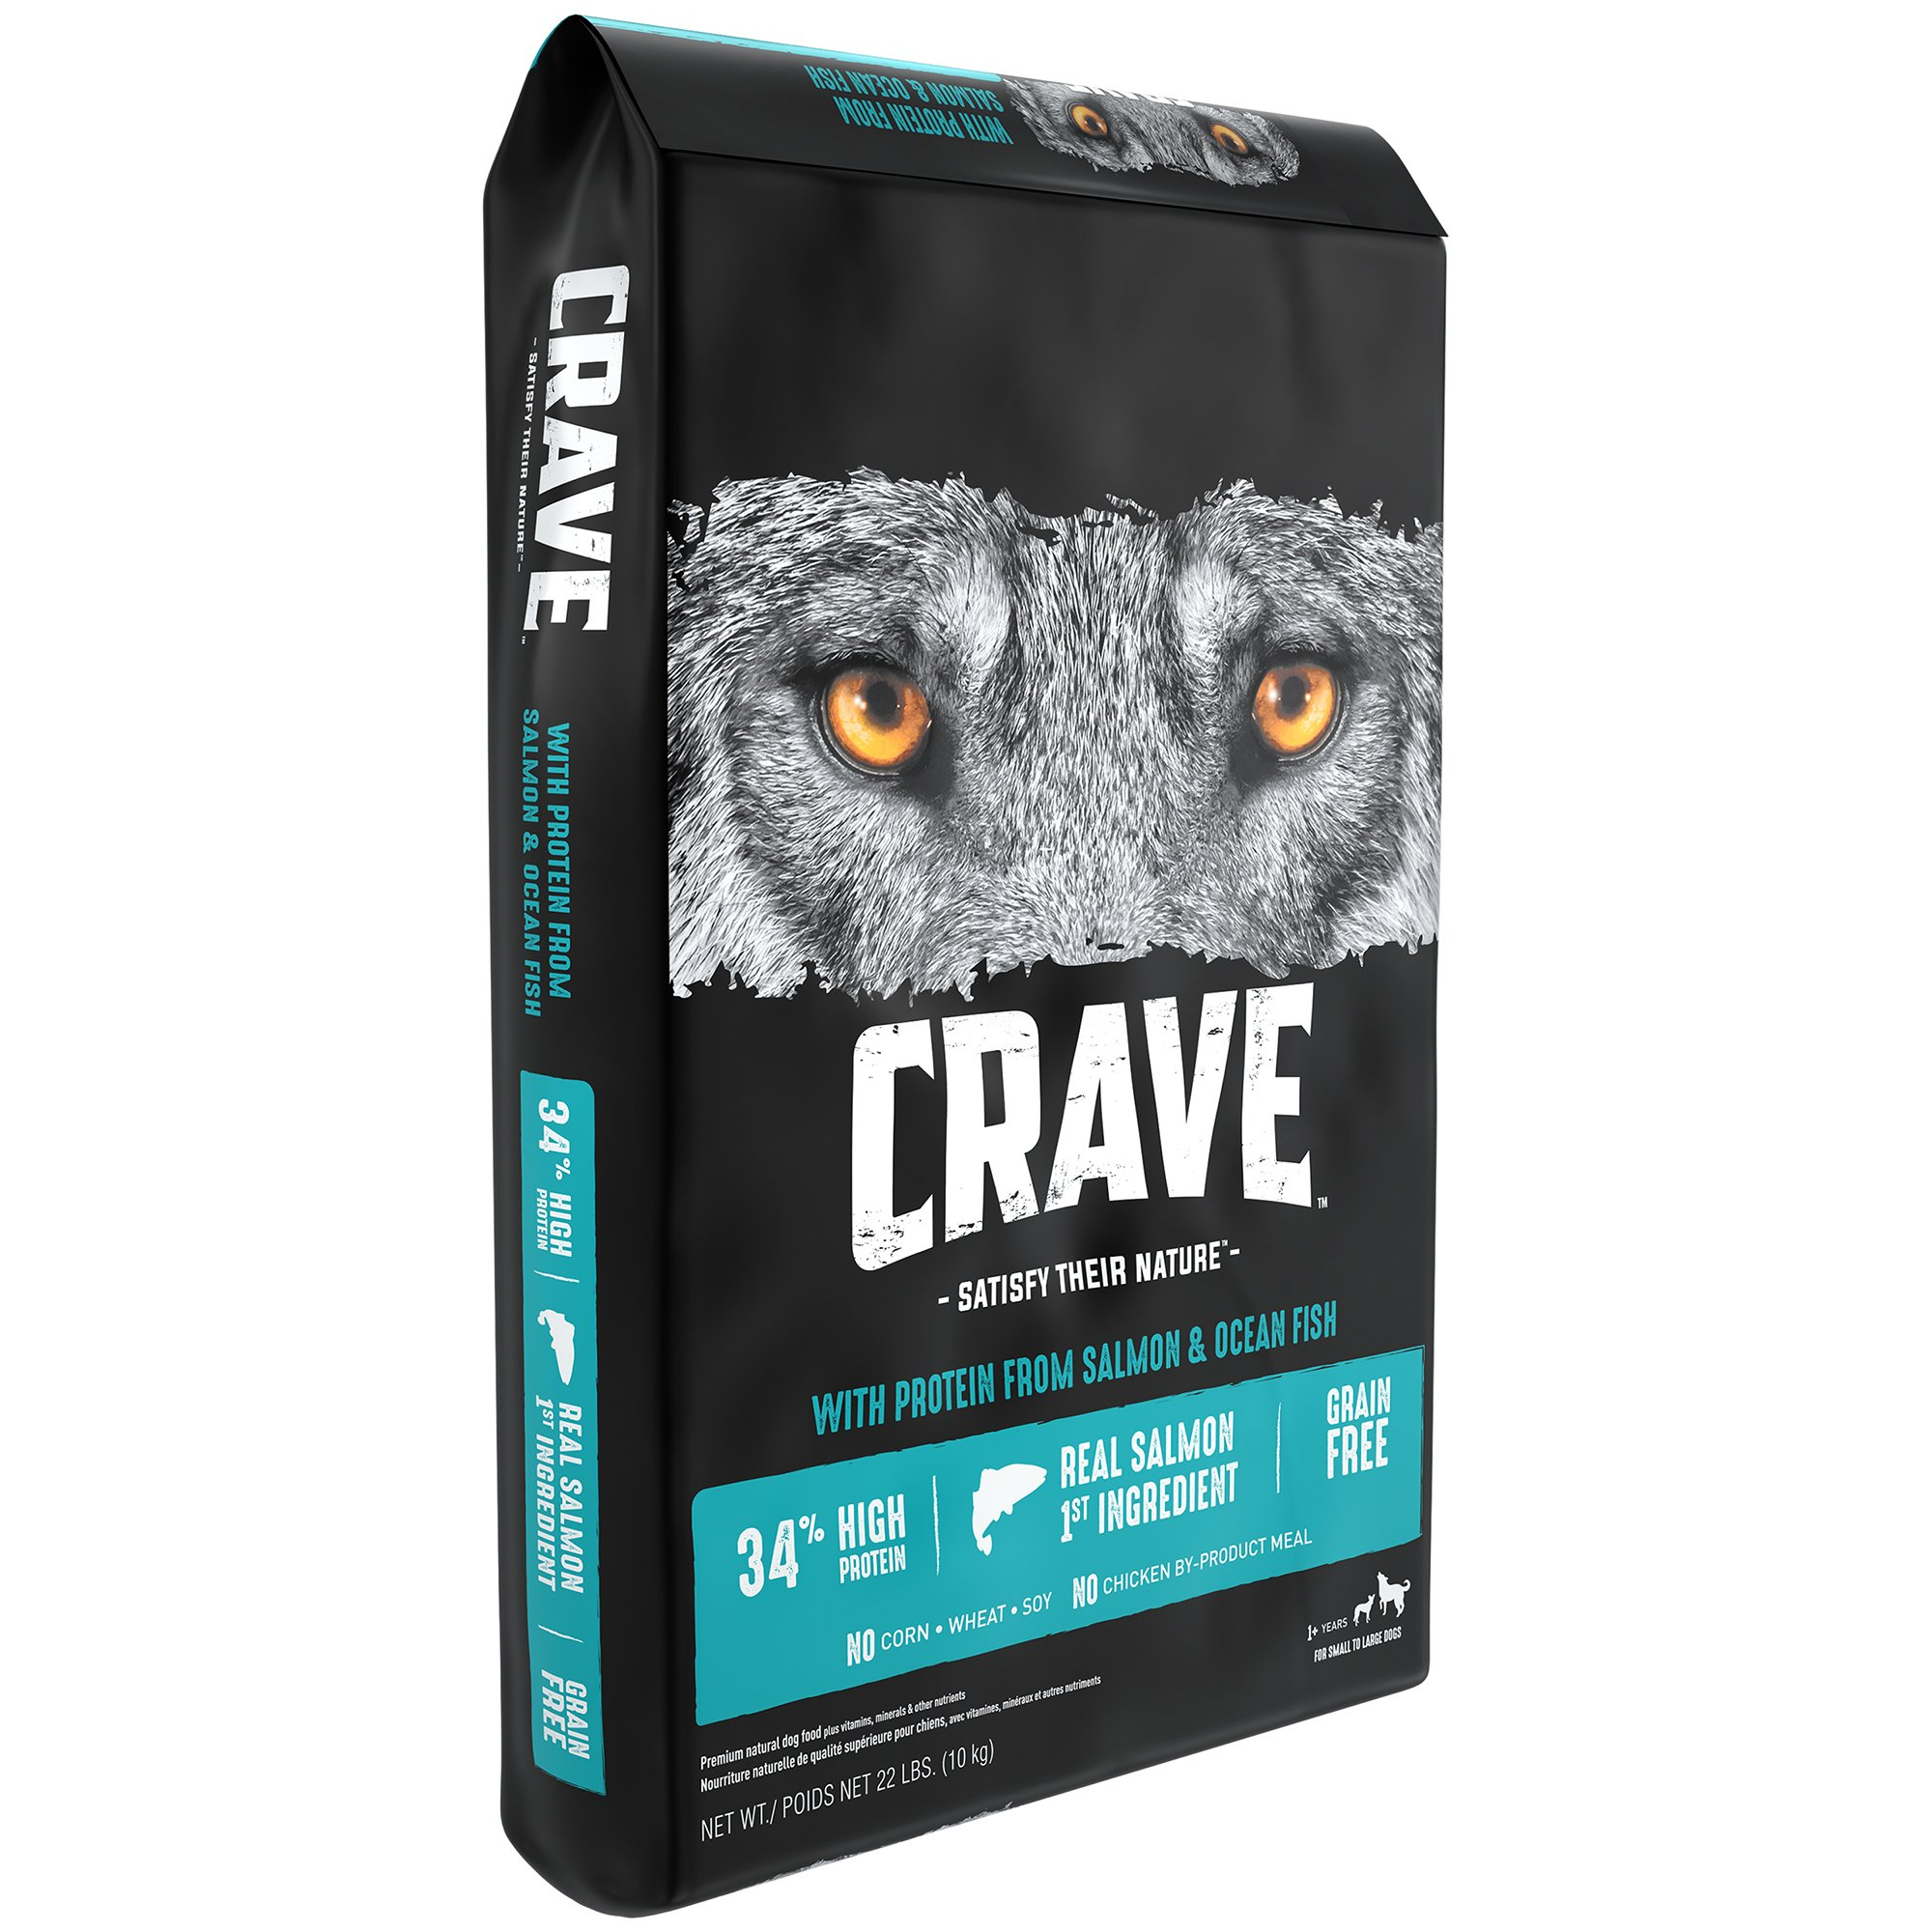 CRAVE Grain Free with Protein from Salmon and Ocean Fish Dry Adult Dog Food, 22 Pound Bag by Crave